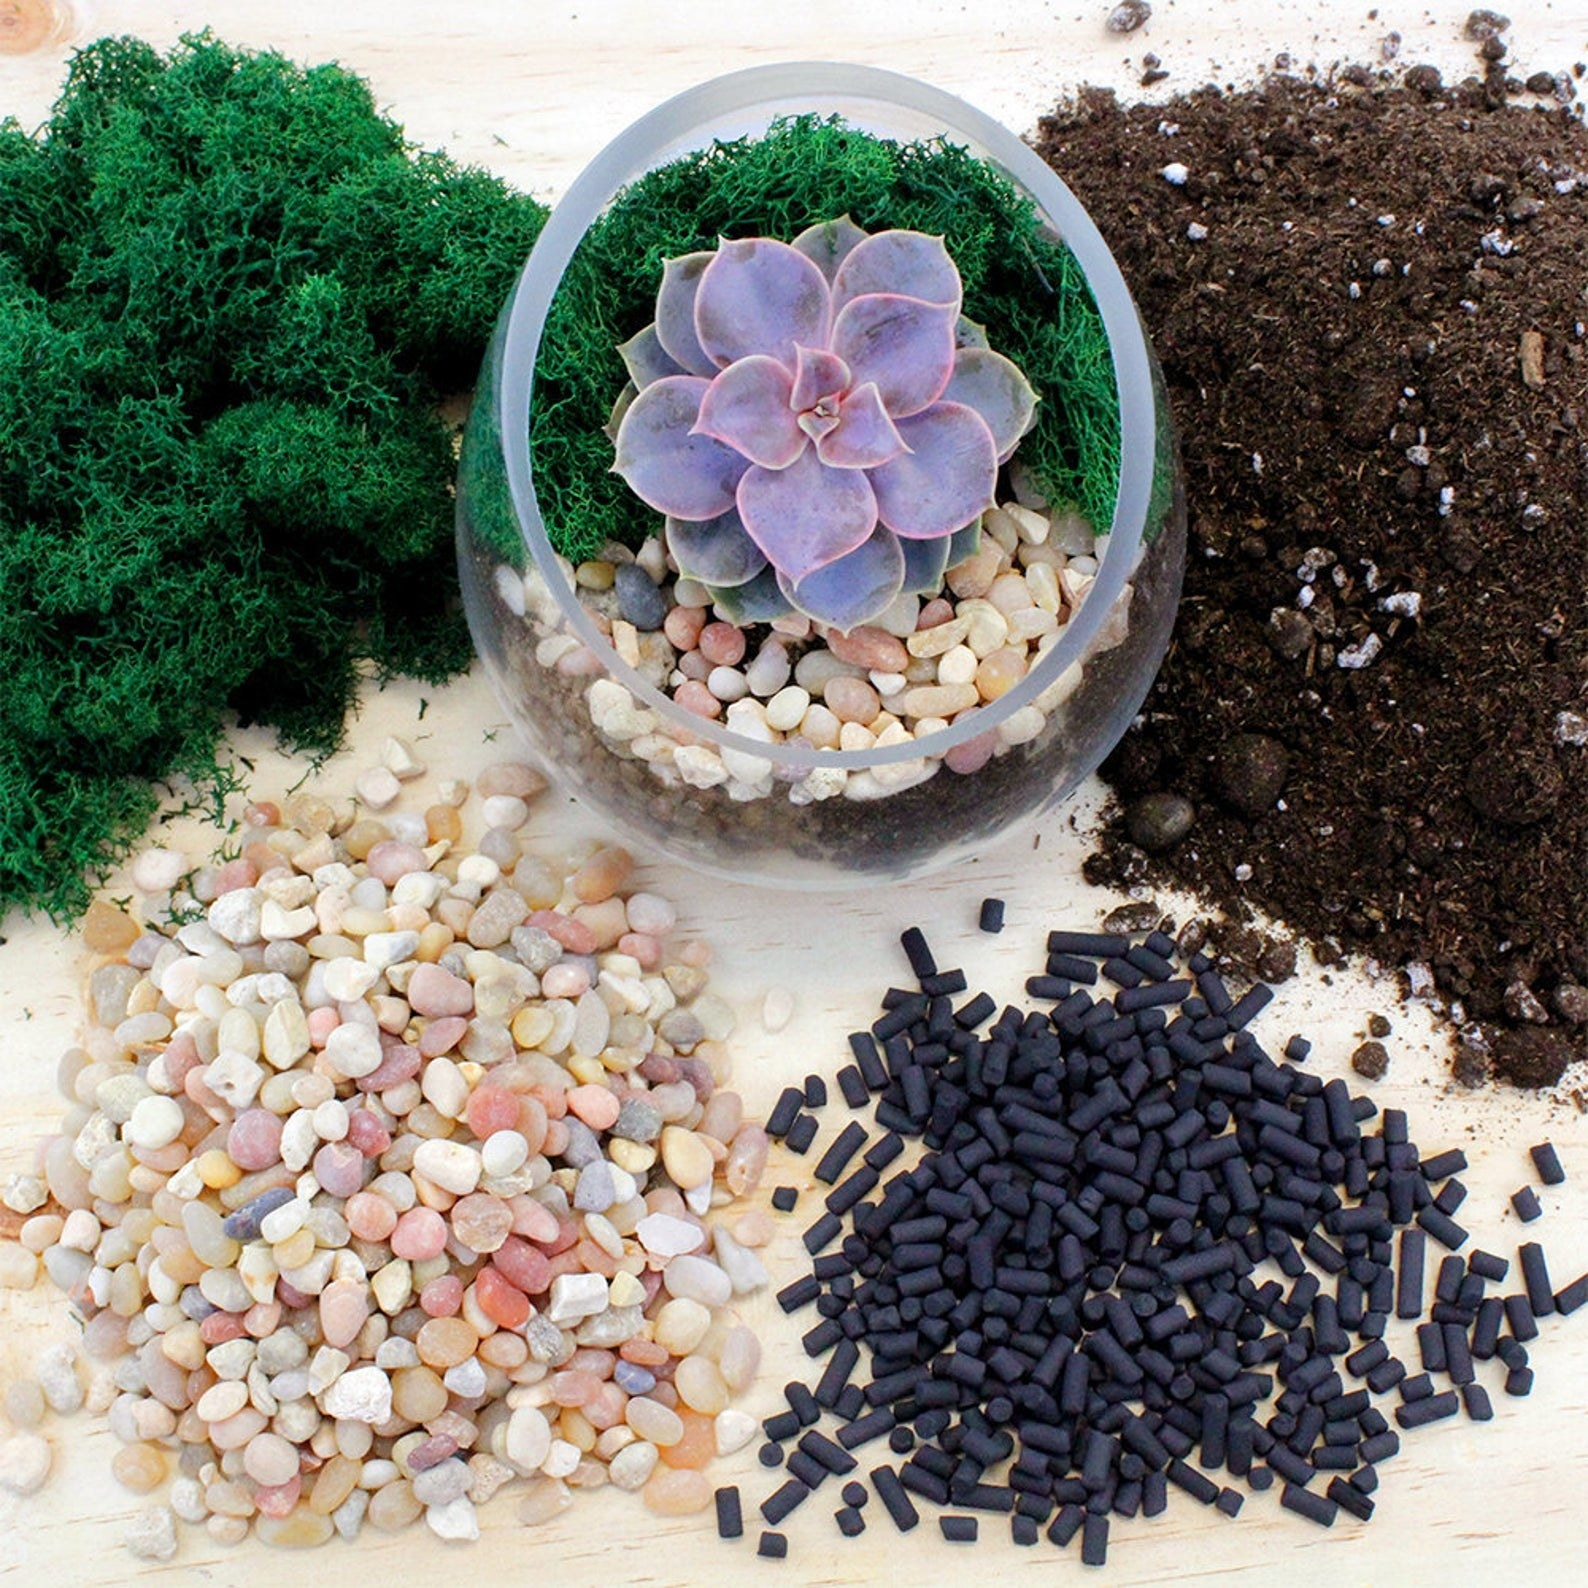 The contents laid out, including moss, soil, light rocks, and carbon